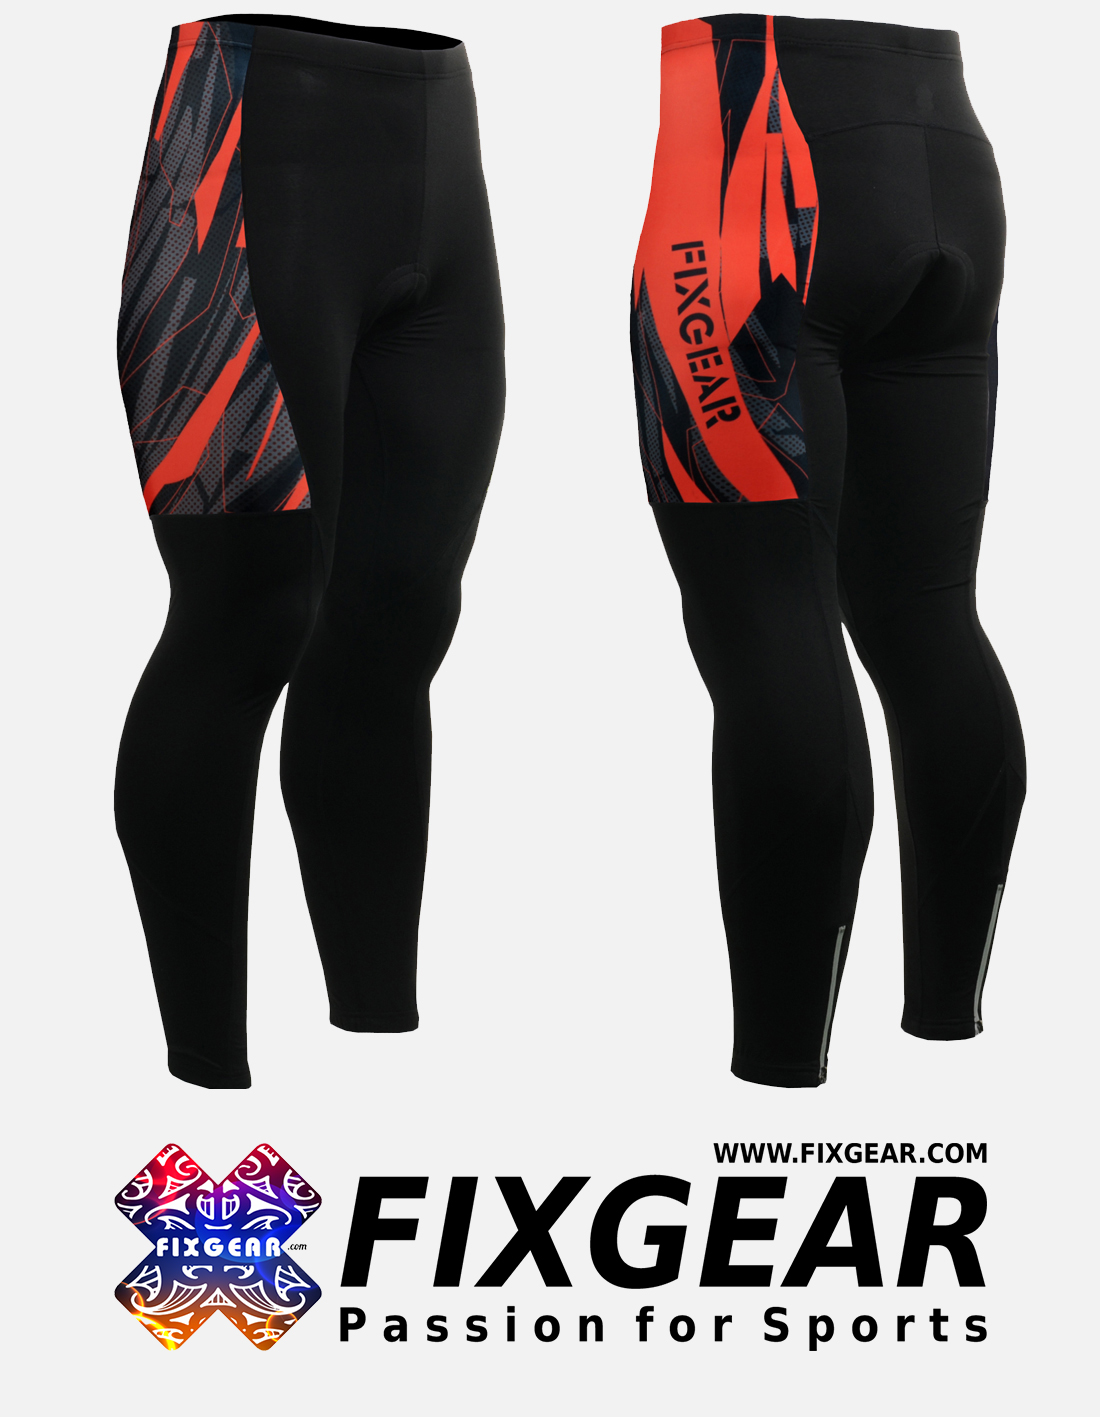 FIXGEAR LT-68 Men's Cycling Cycling Padded Pants